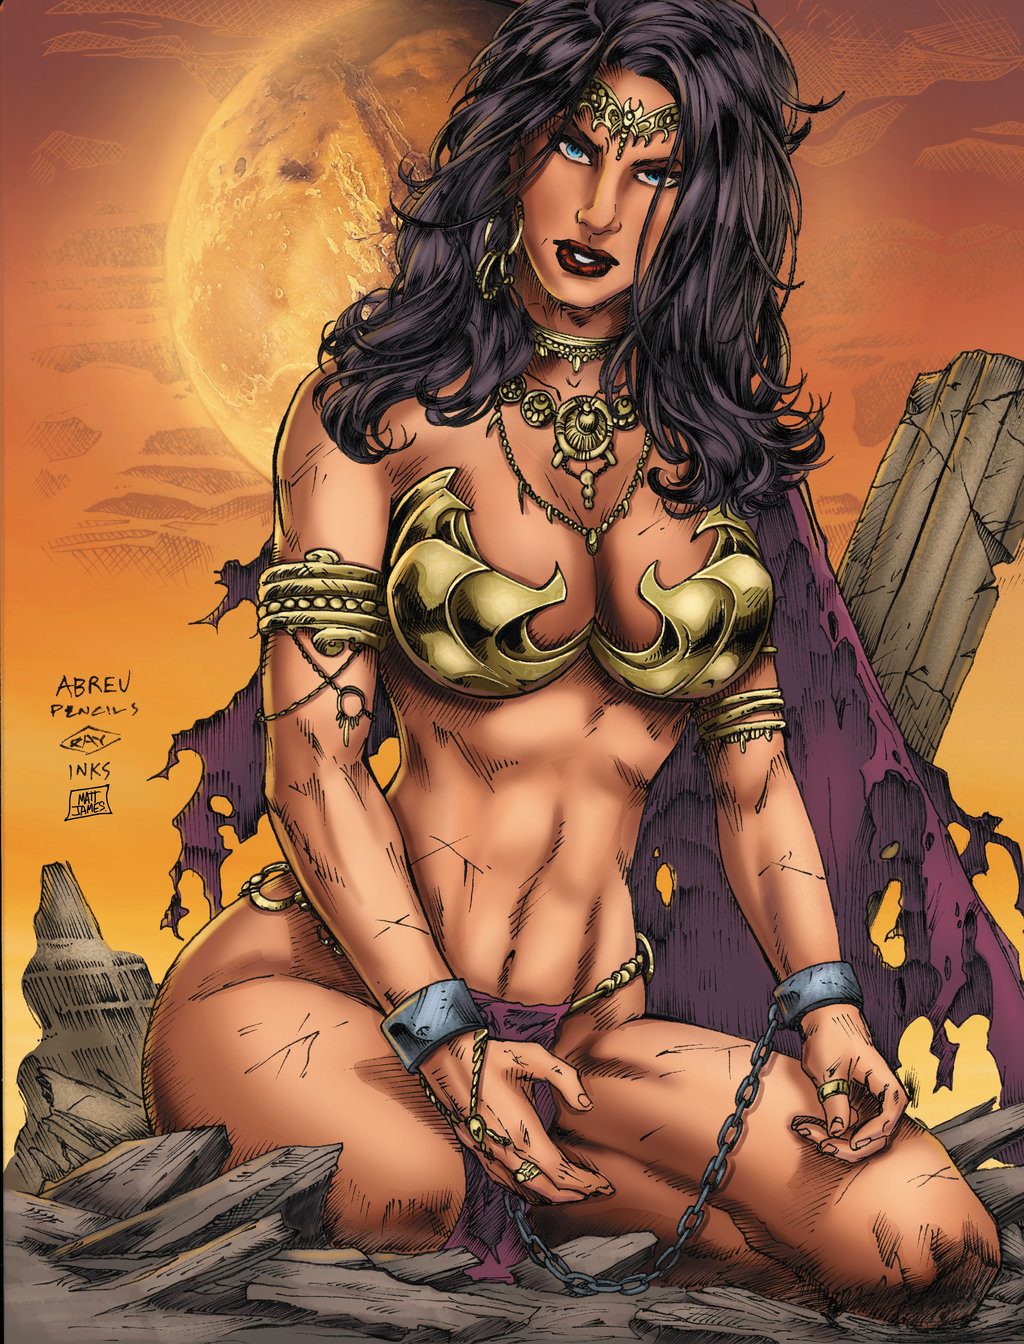 Matt james dejah thoris by mattjamescomicarts d9adxao